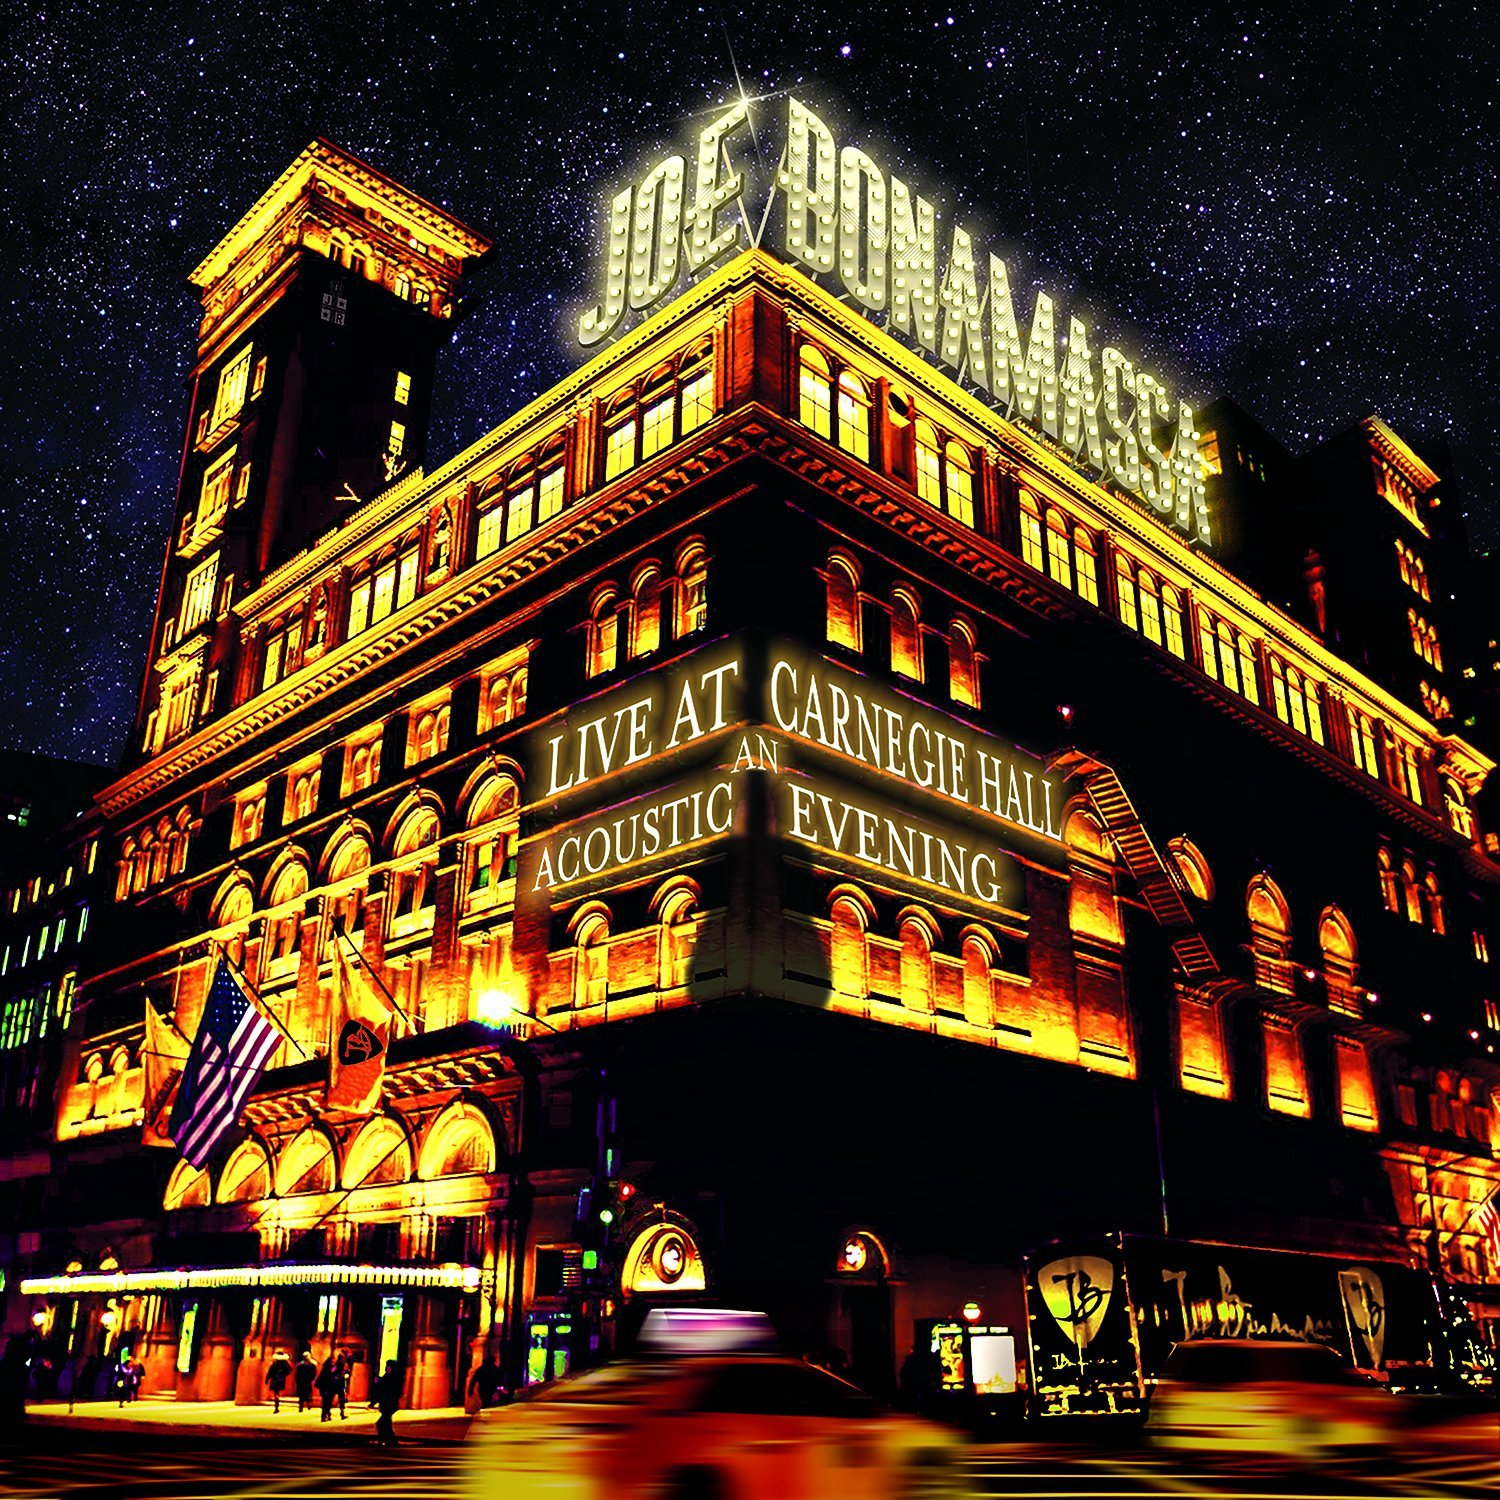 Joe Bonamassa - Live At Carnegie Hall: An Acoustic Evening [2CD]